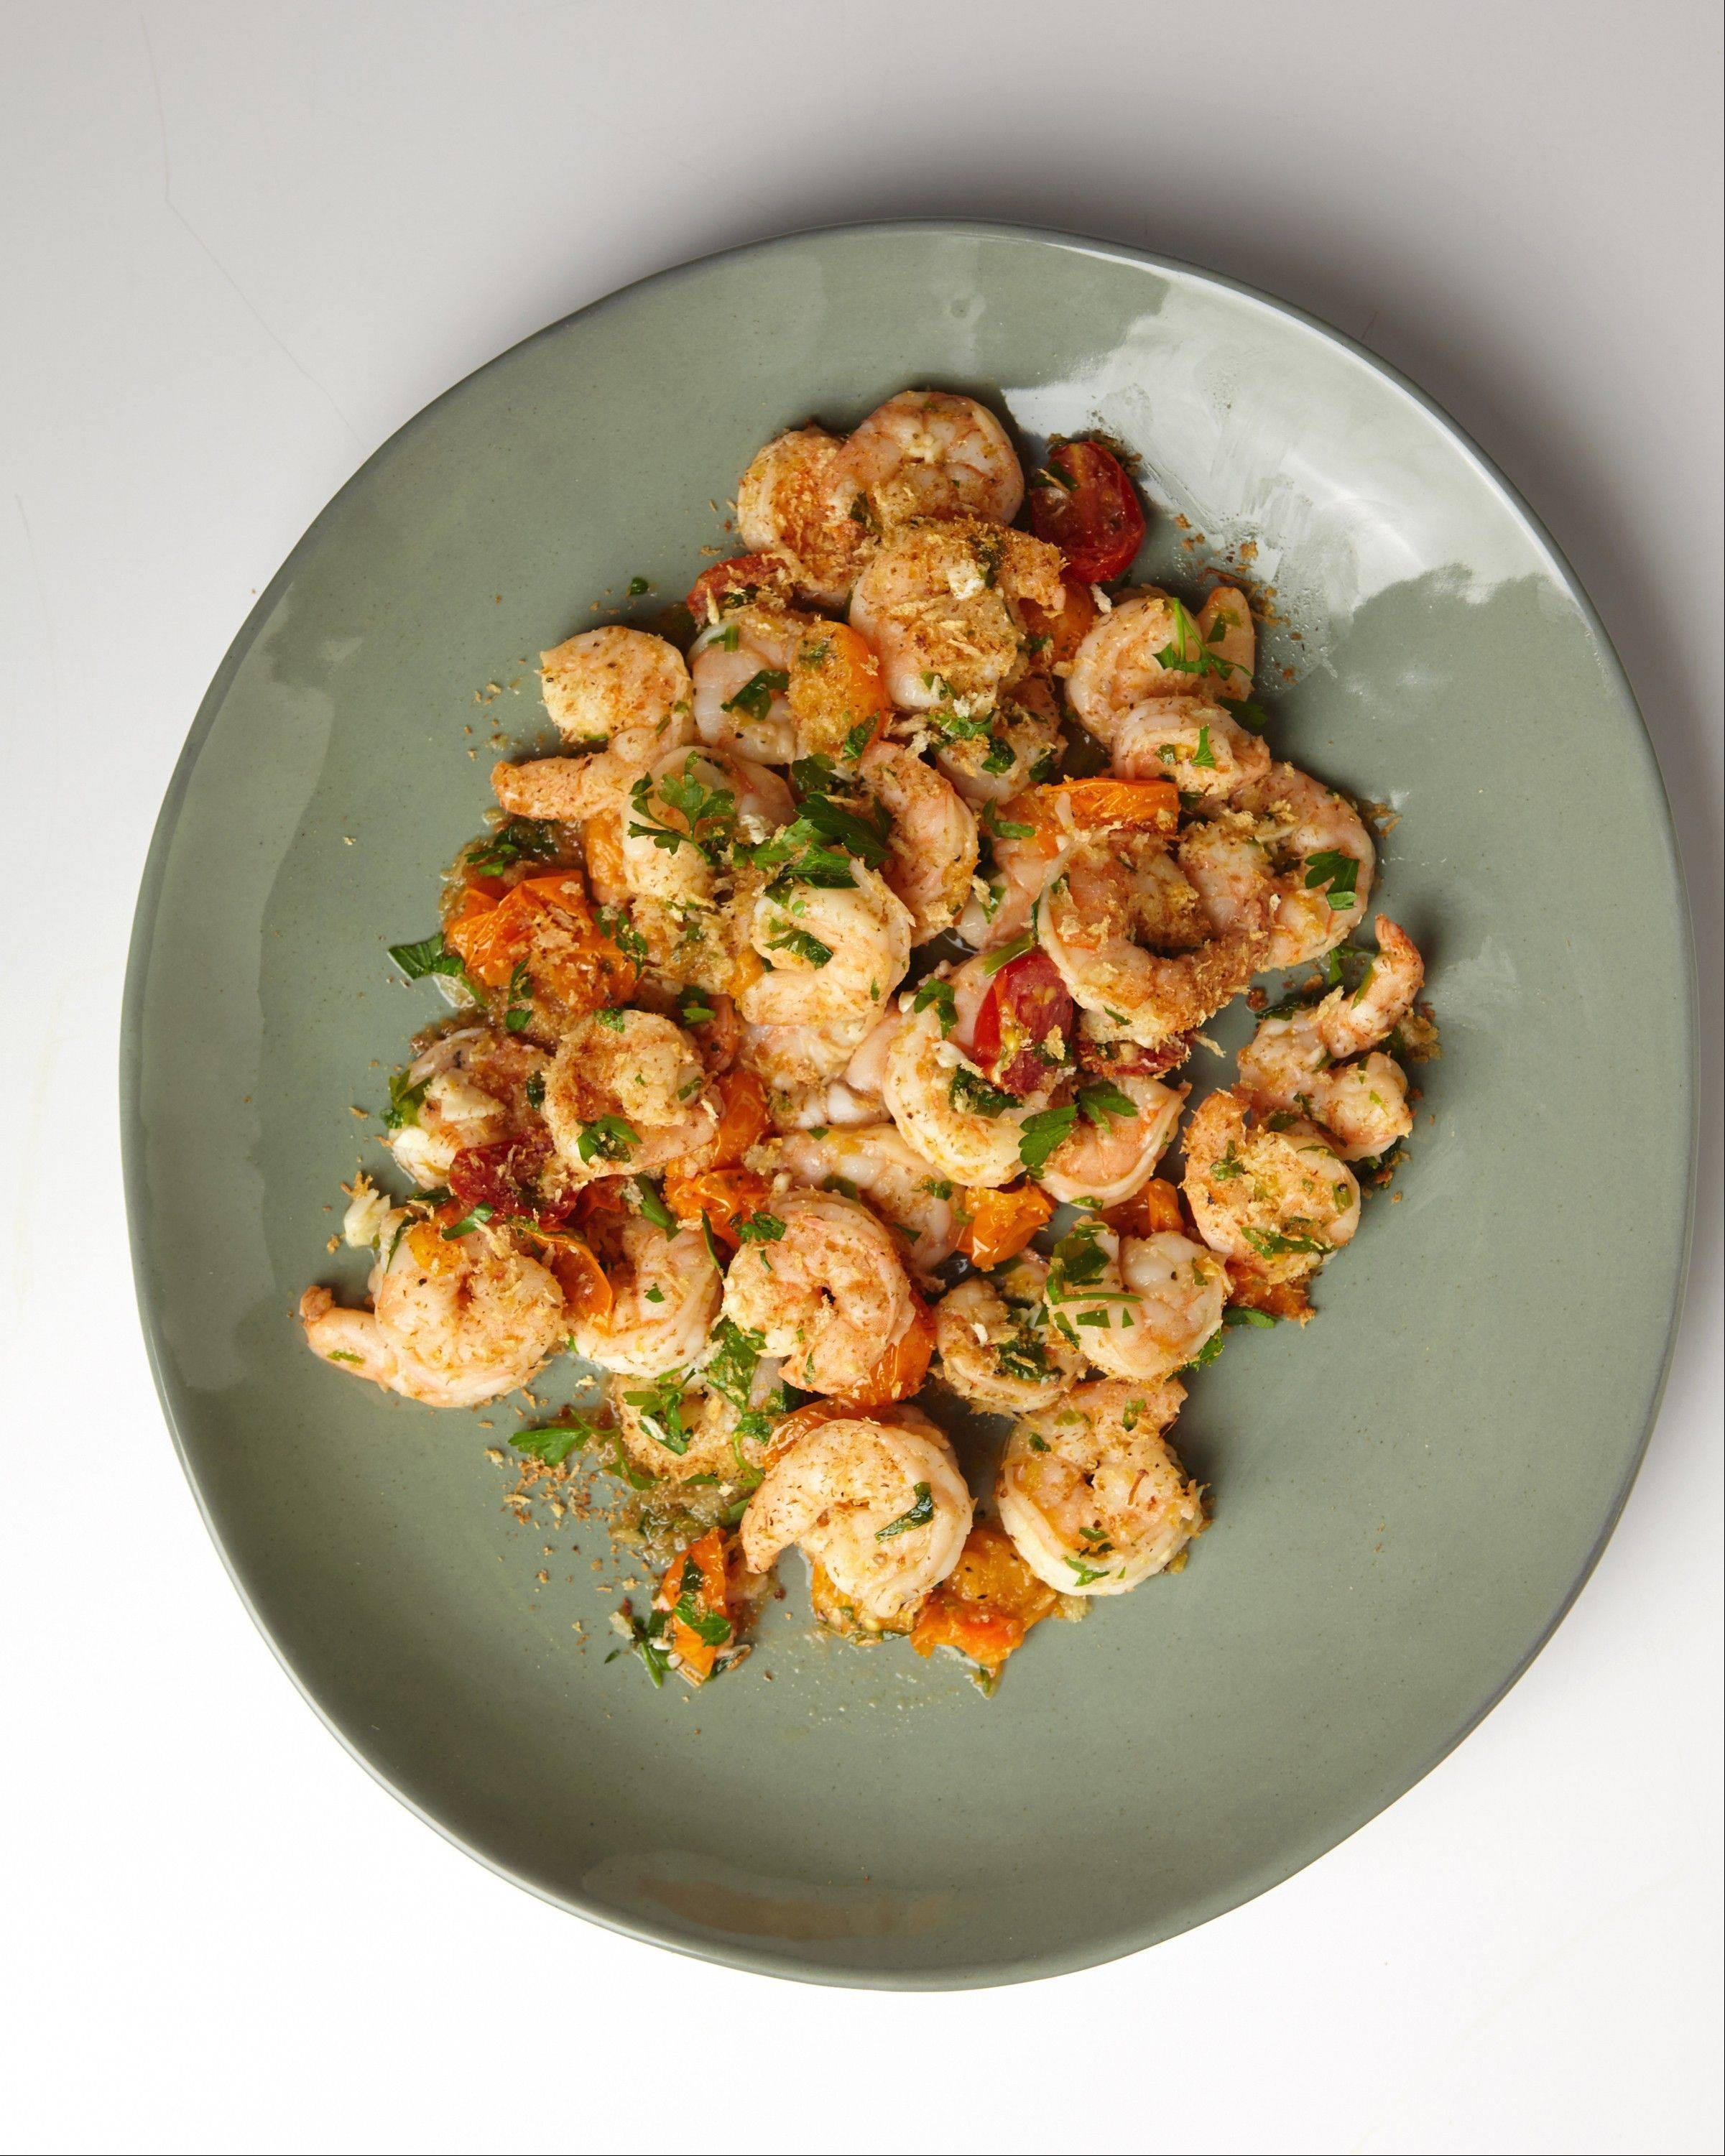 Garlic Crusted Shrimp with Cherry Tomatoes comes together in 20 minutes.